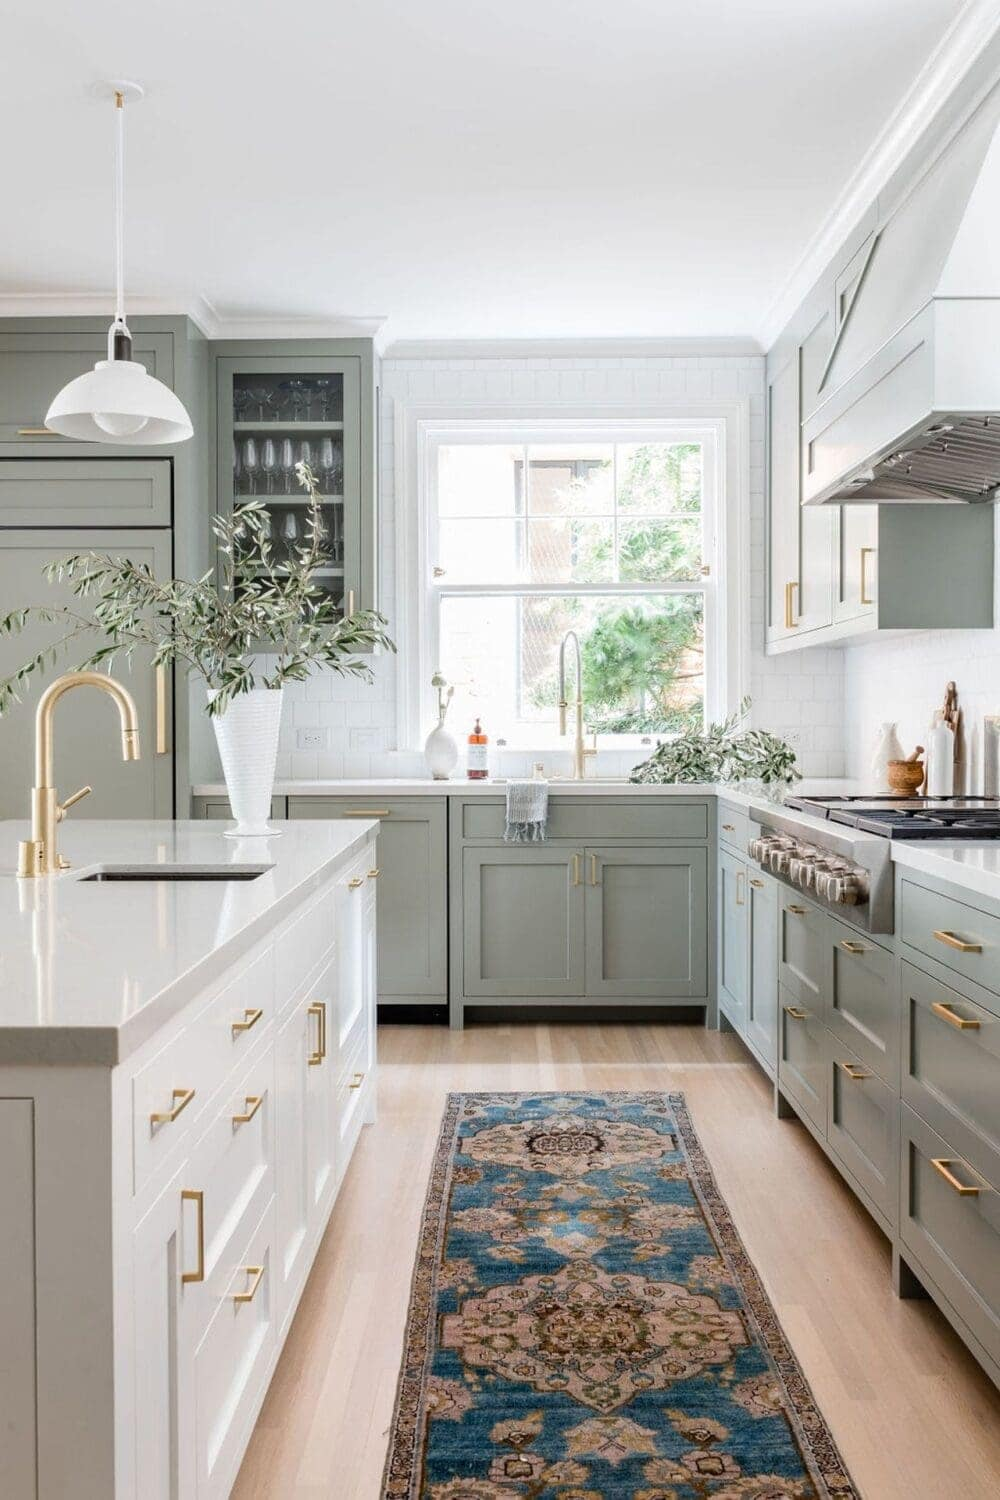 9 Kitchen Cabinet Colors & Combinations [With Pictures]